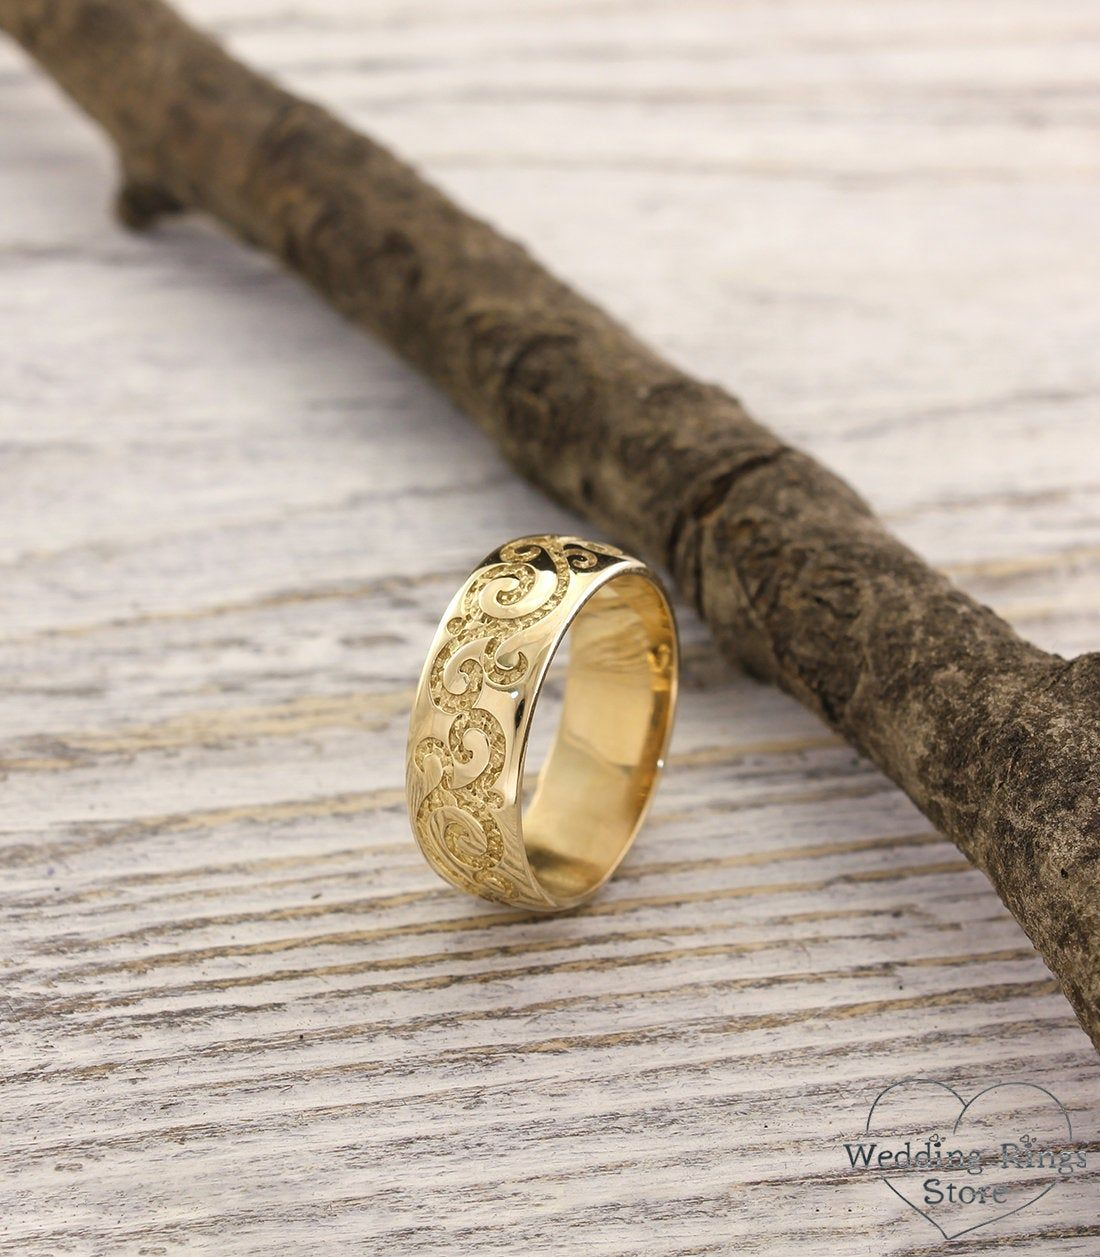 Unique wedding band in vintage style, 7mm unusual wedding band, Wide wedding ring, 14k solid yellow gold band, Vine wedding band